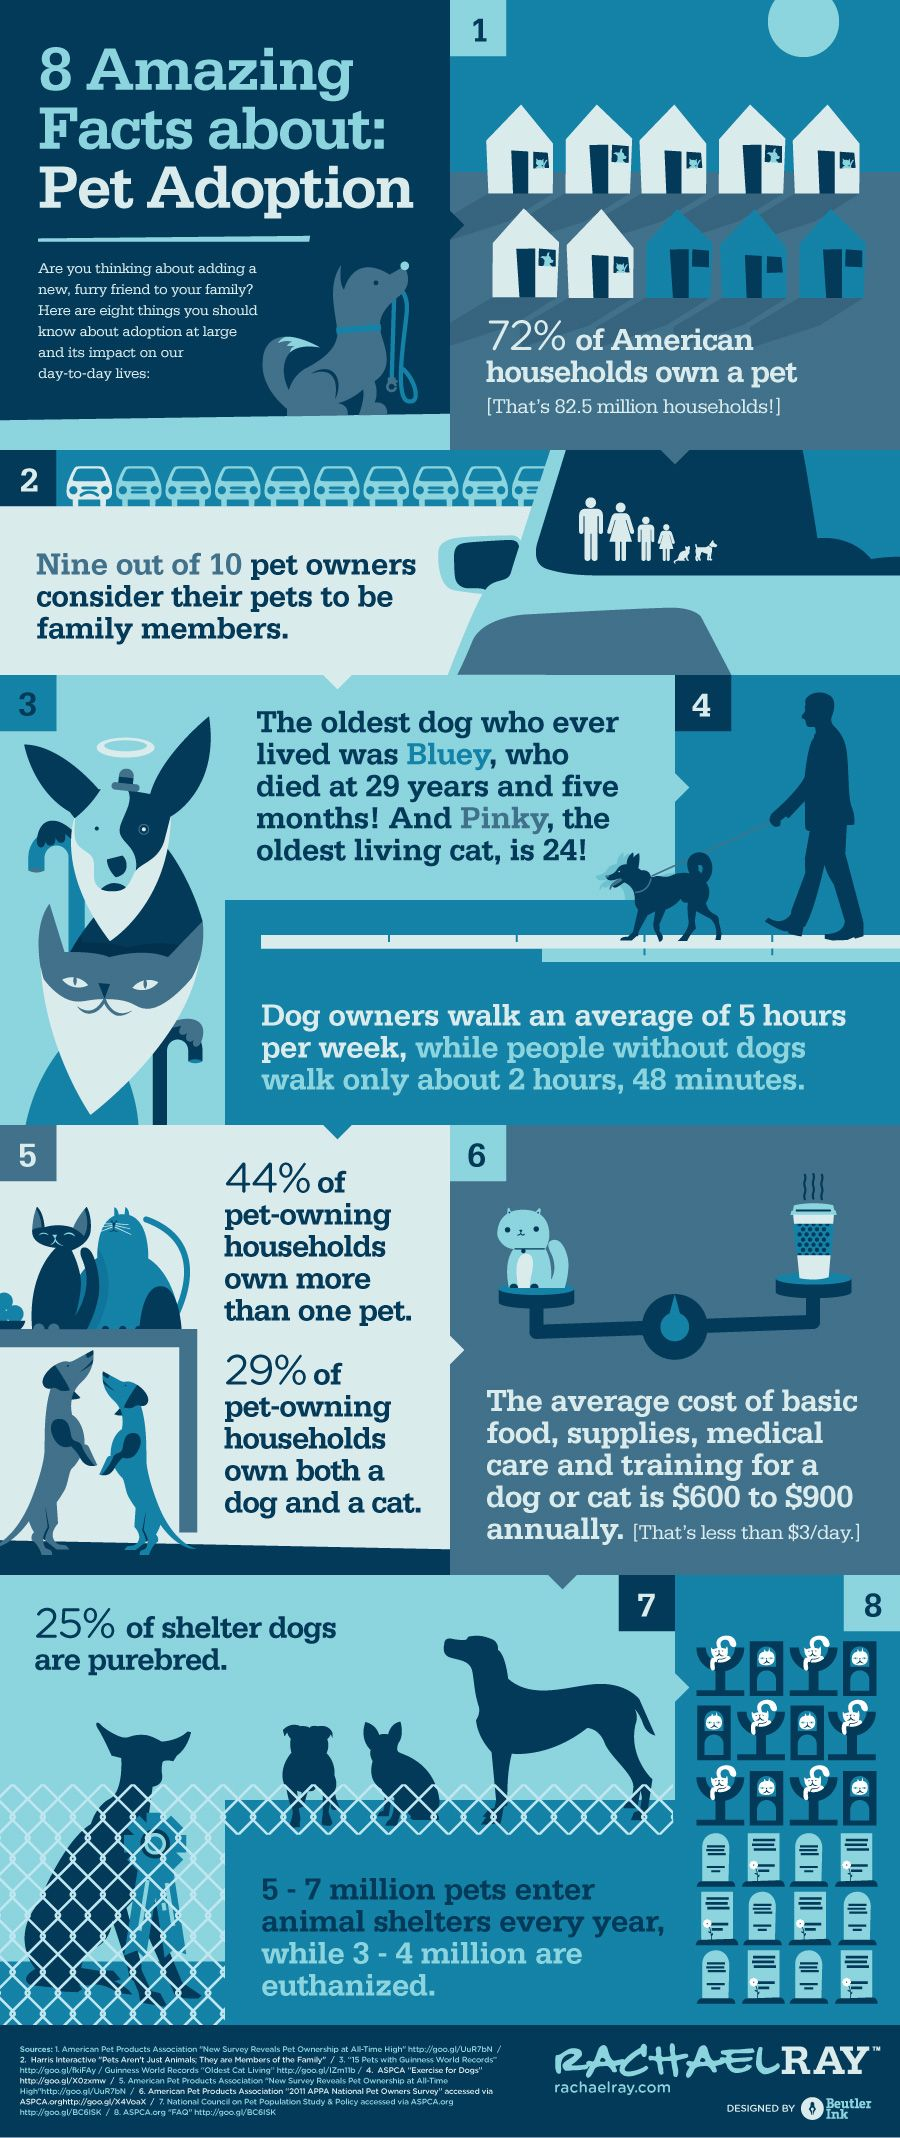 8 Amazing Facts About Pet Adoption infographic